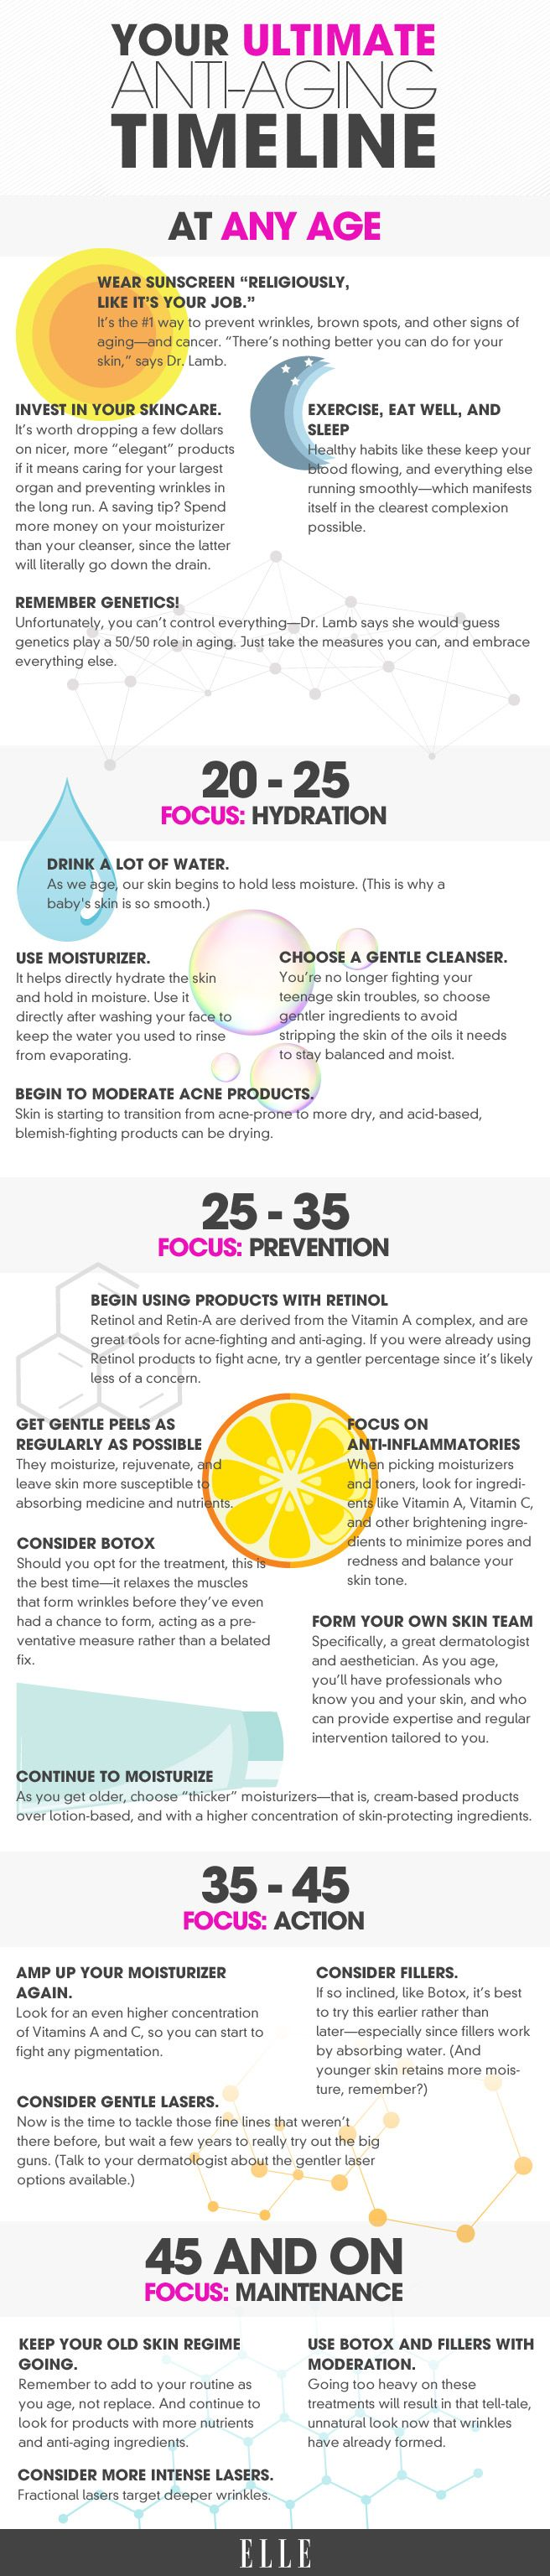 Anti-Aging Skincare Guide for Every Age - Preventative Skincare Infographic - Elle http://amberageless.jeunesseglobal.com/products_all.aspx